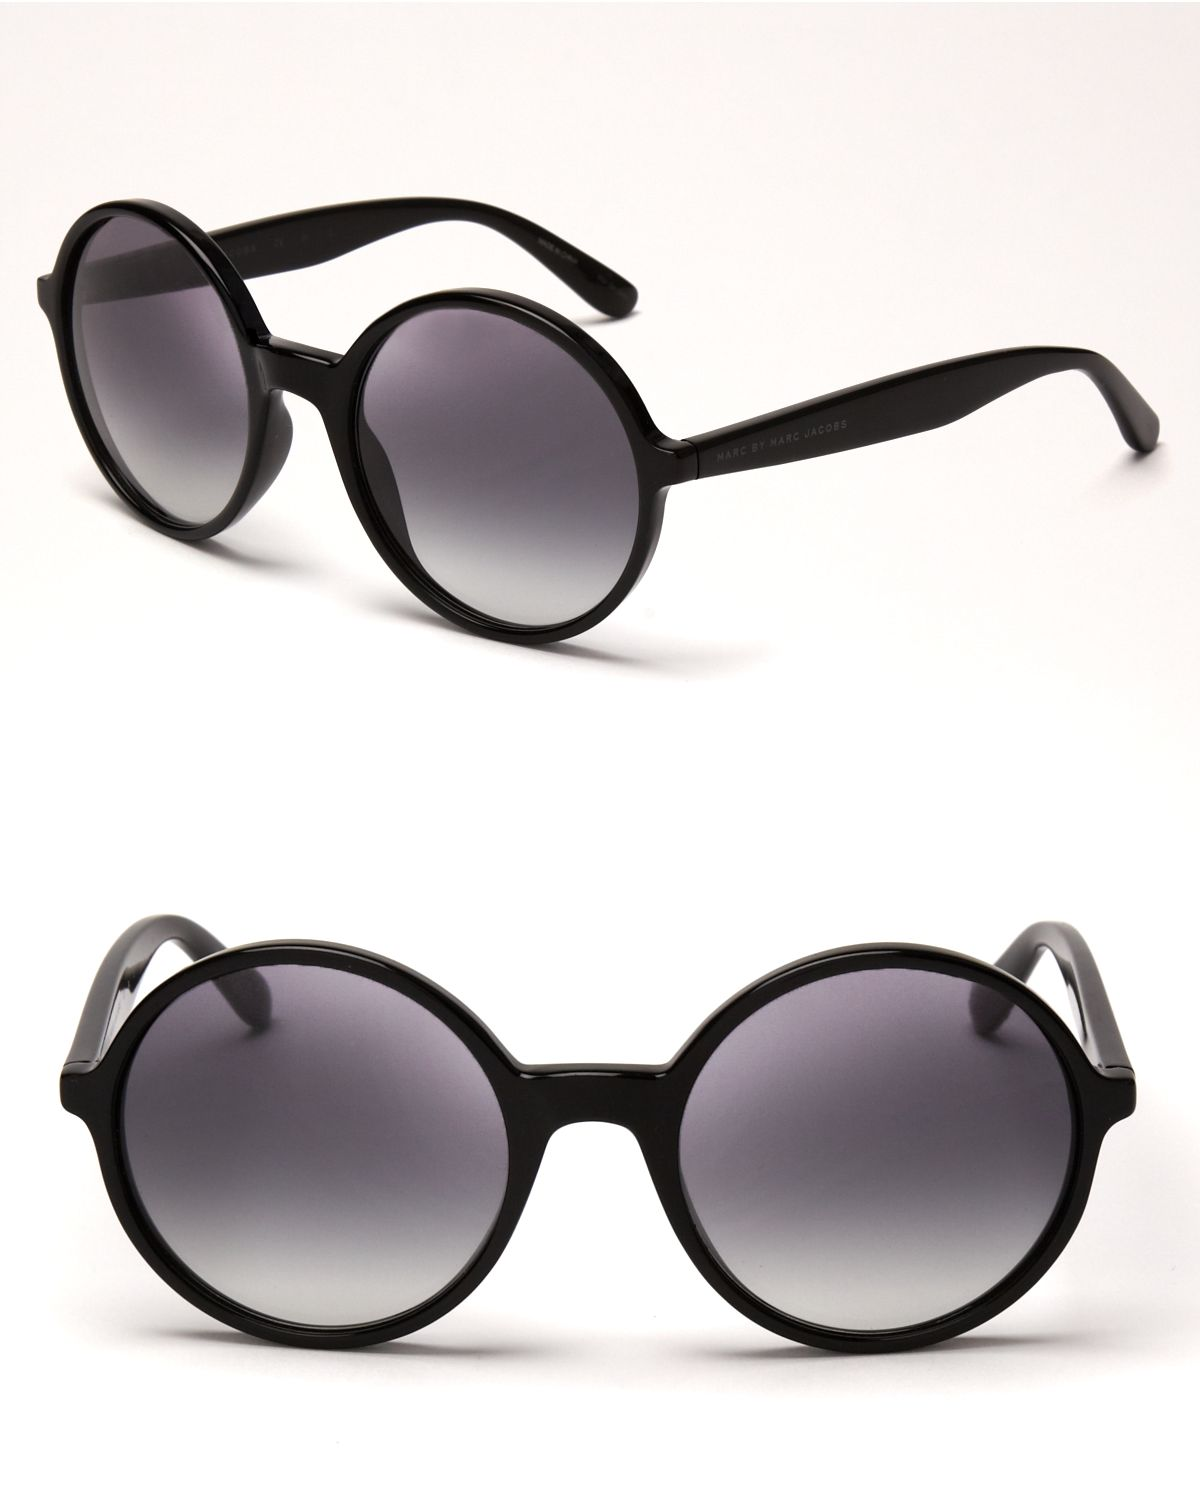 MARC BY MARC JACOBS Oversized Round Sunglasses | Bloomingdale's